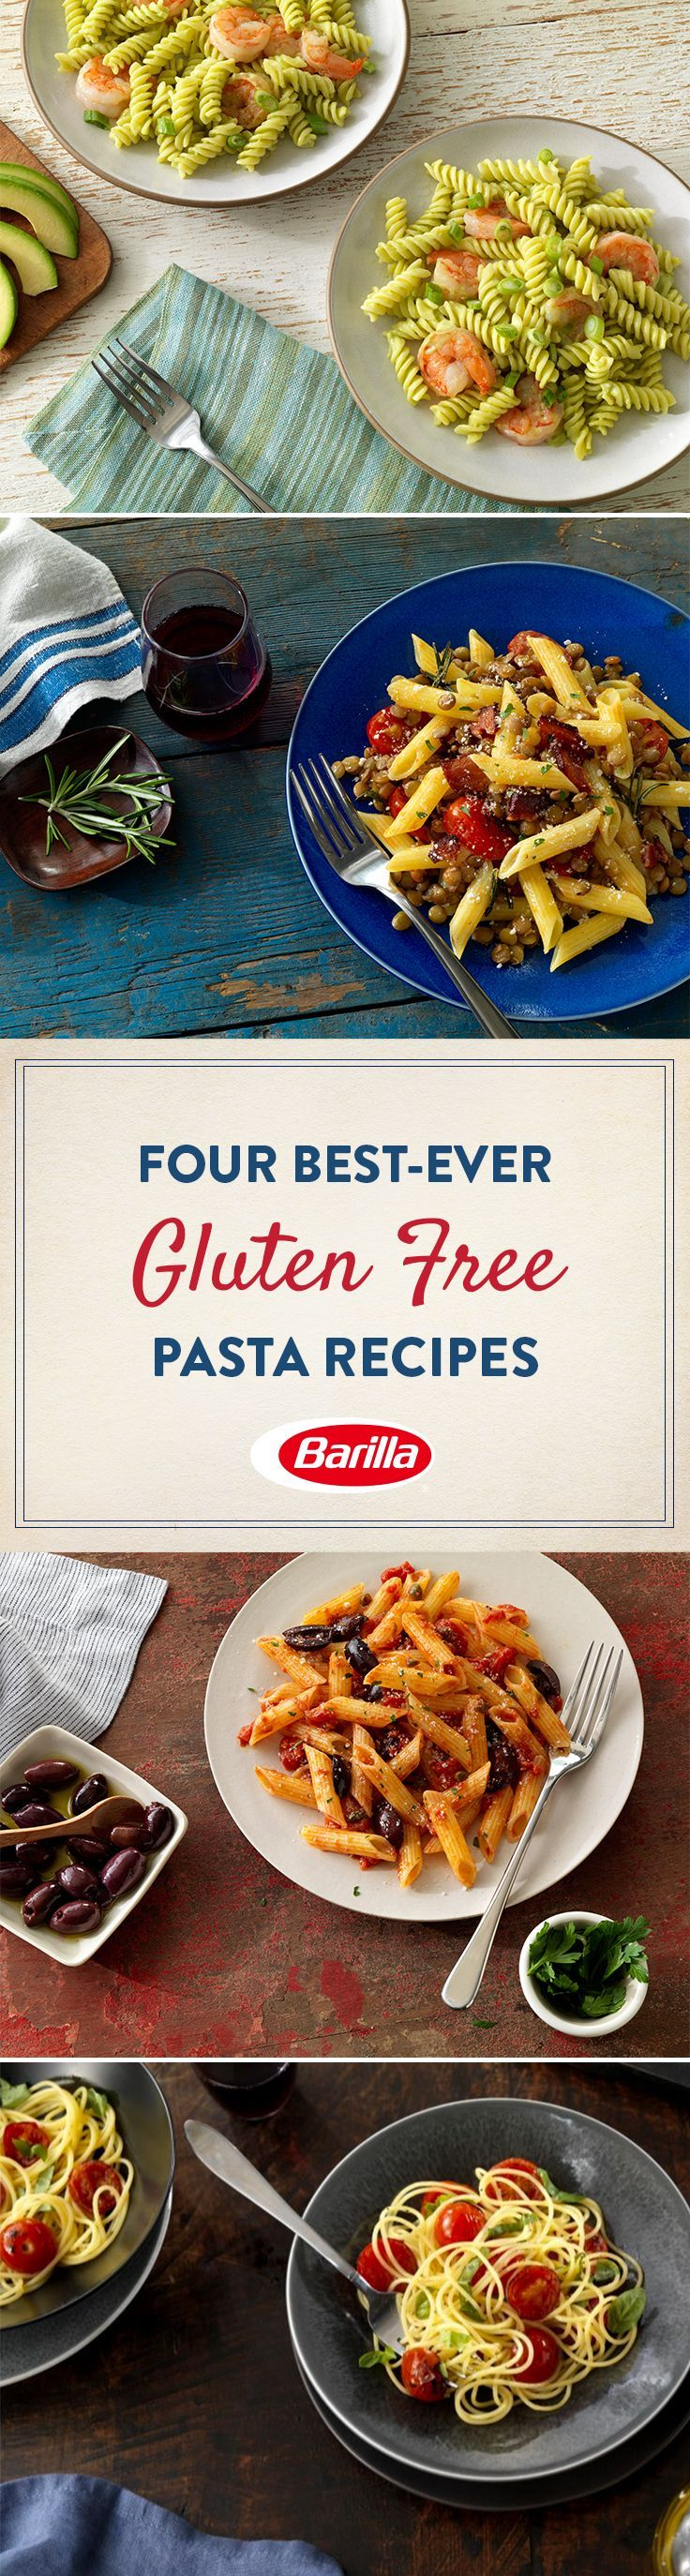 Discover gluten free pasta recipes for wholesome dinner ideas that the whole family will love. Great taste goes gluten free with Barilla pasta!